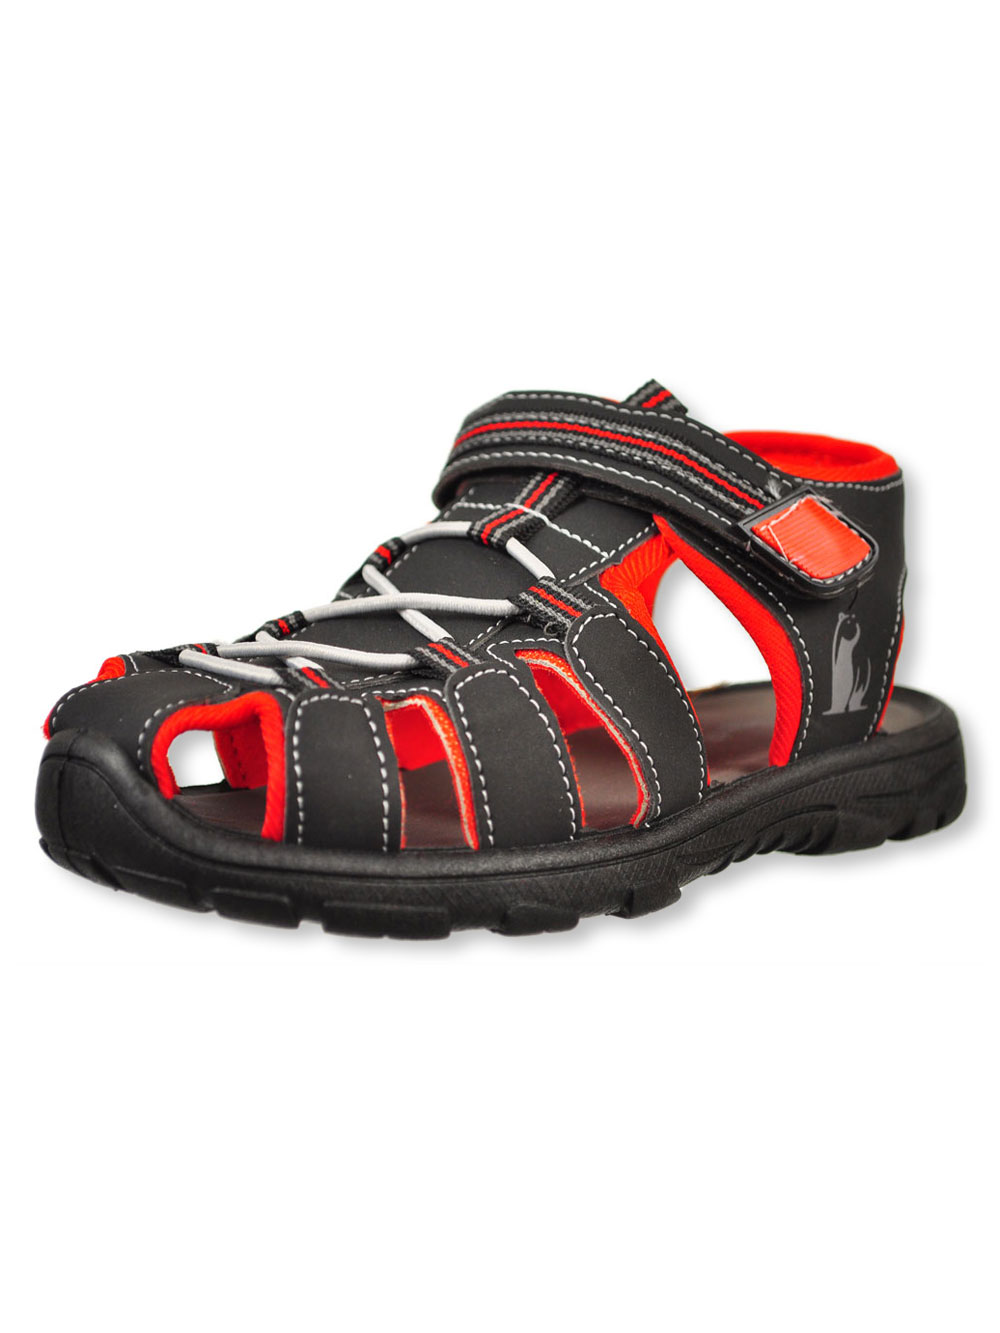 Details About Rugged Bear Boys Sports Sandals Sizes 5 4